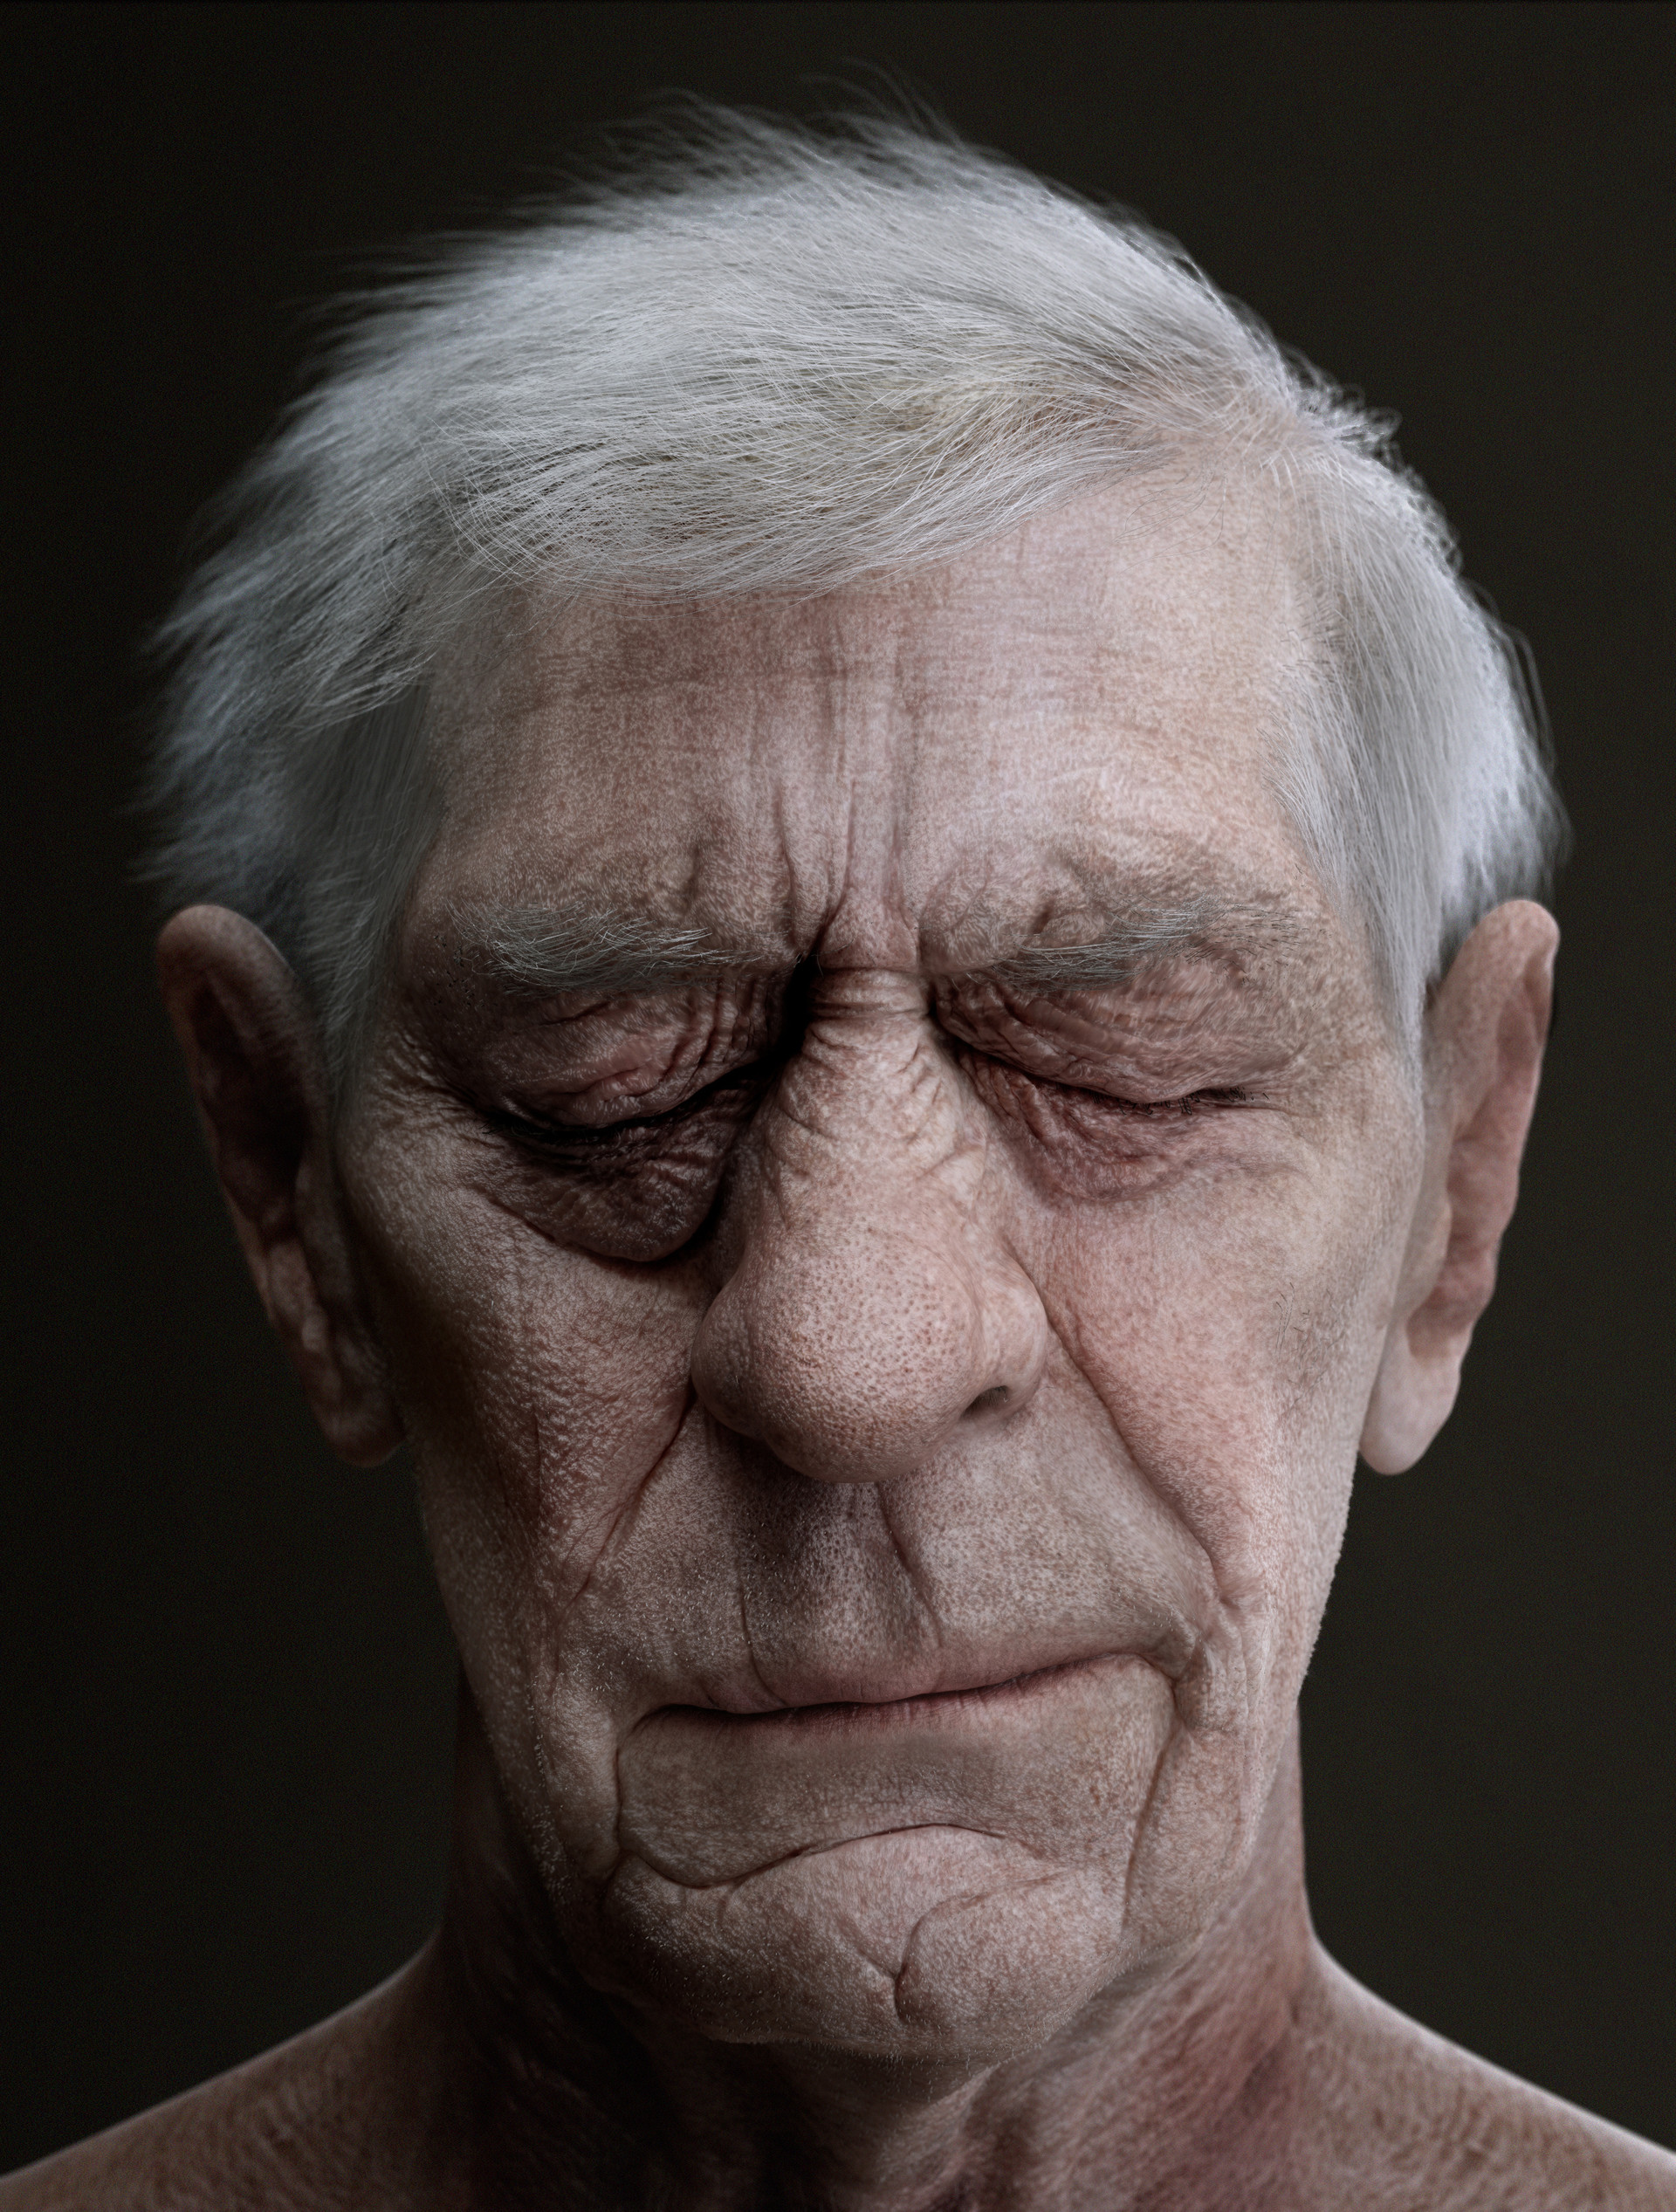 ArtStation - Old man's portrait. (final), Venetis Kokonas